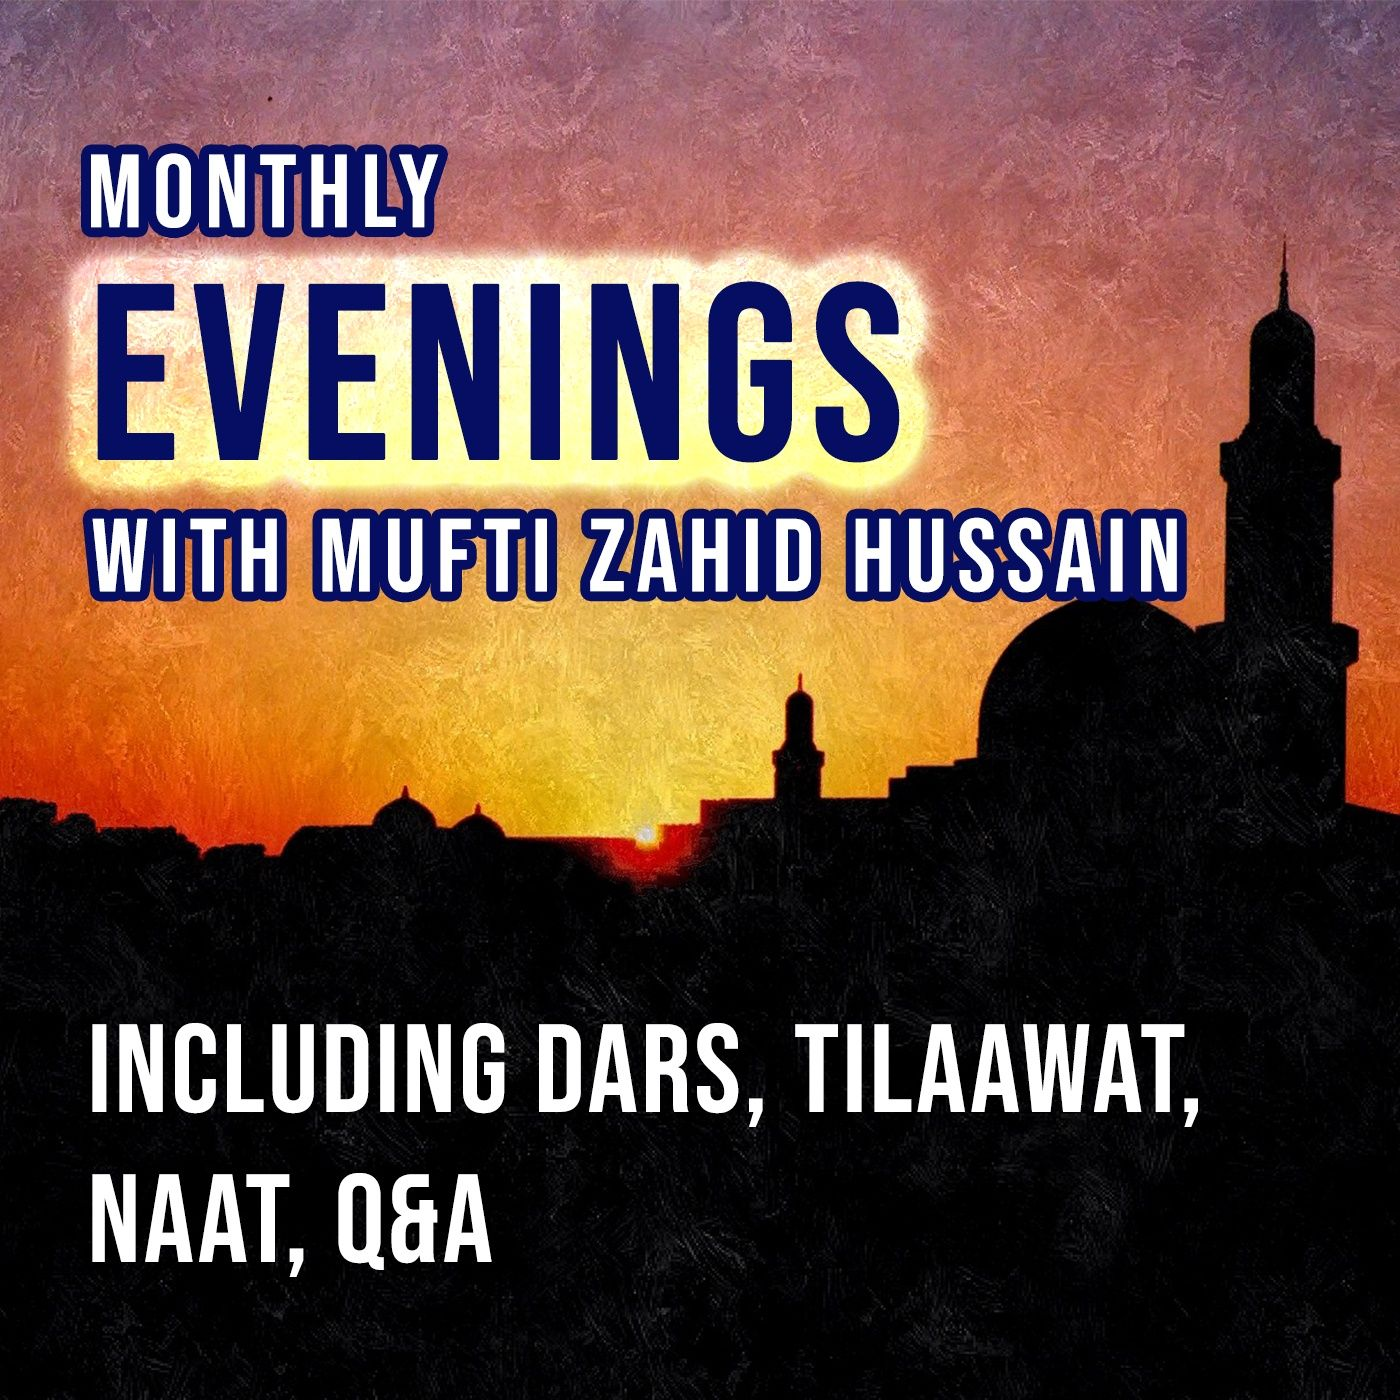 Monthly Evenings with Mufti Zahid